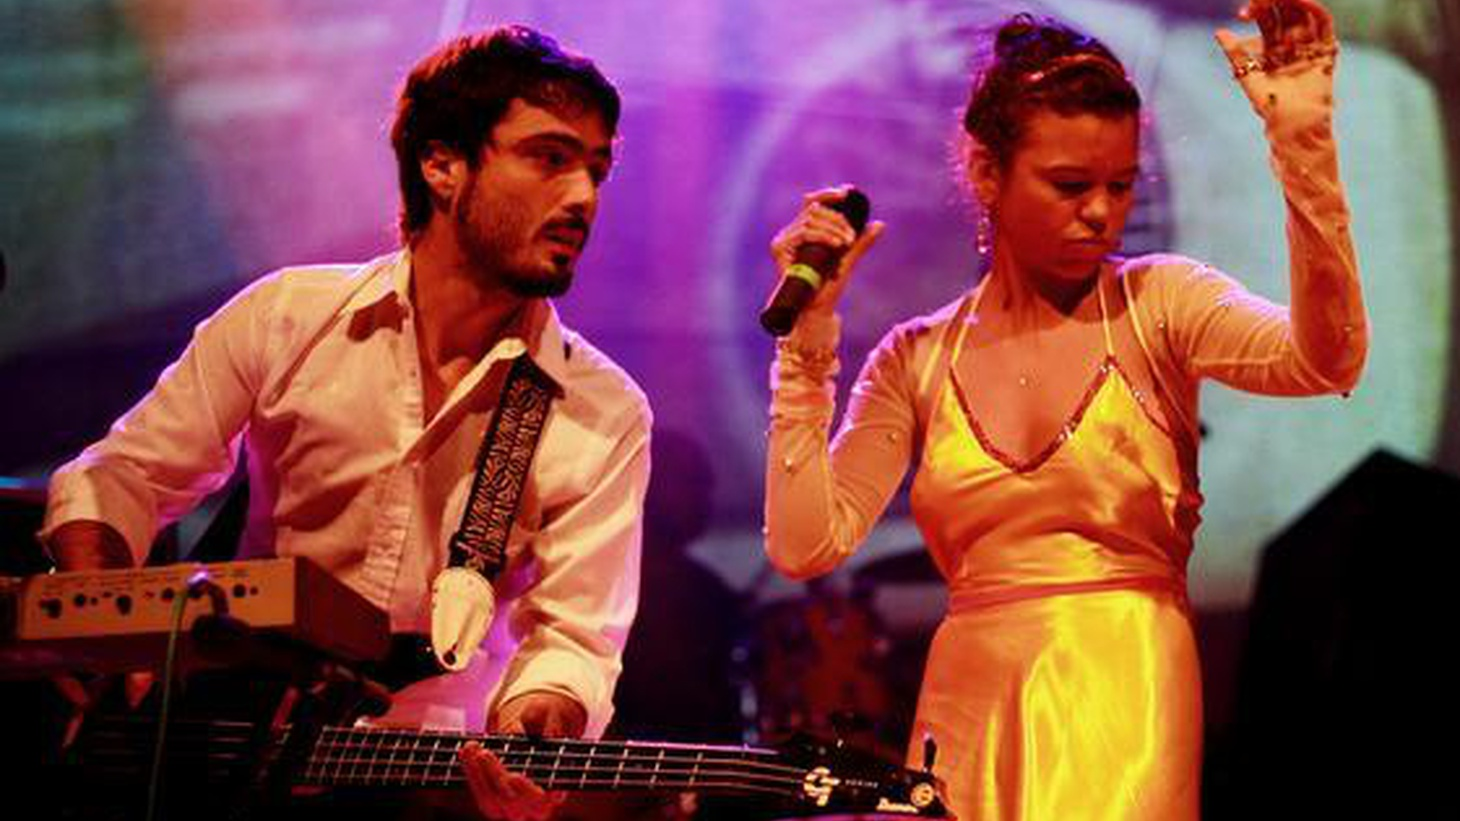 ...from Blow Up.   Bomba Estereo fuse the indigenous sounds of the Carinbean Coast of Colombia with Electronica and Hip-Hop...